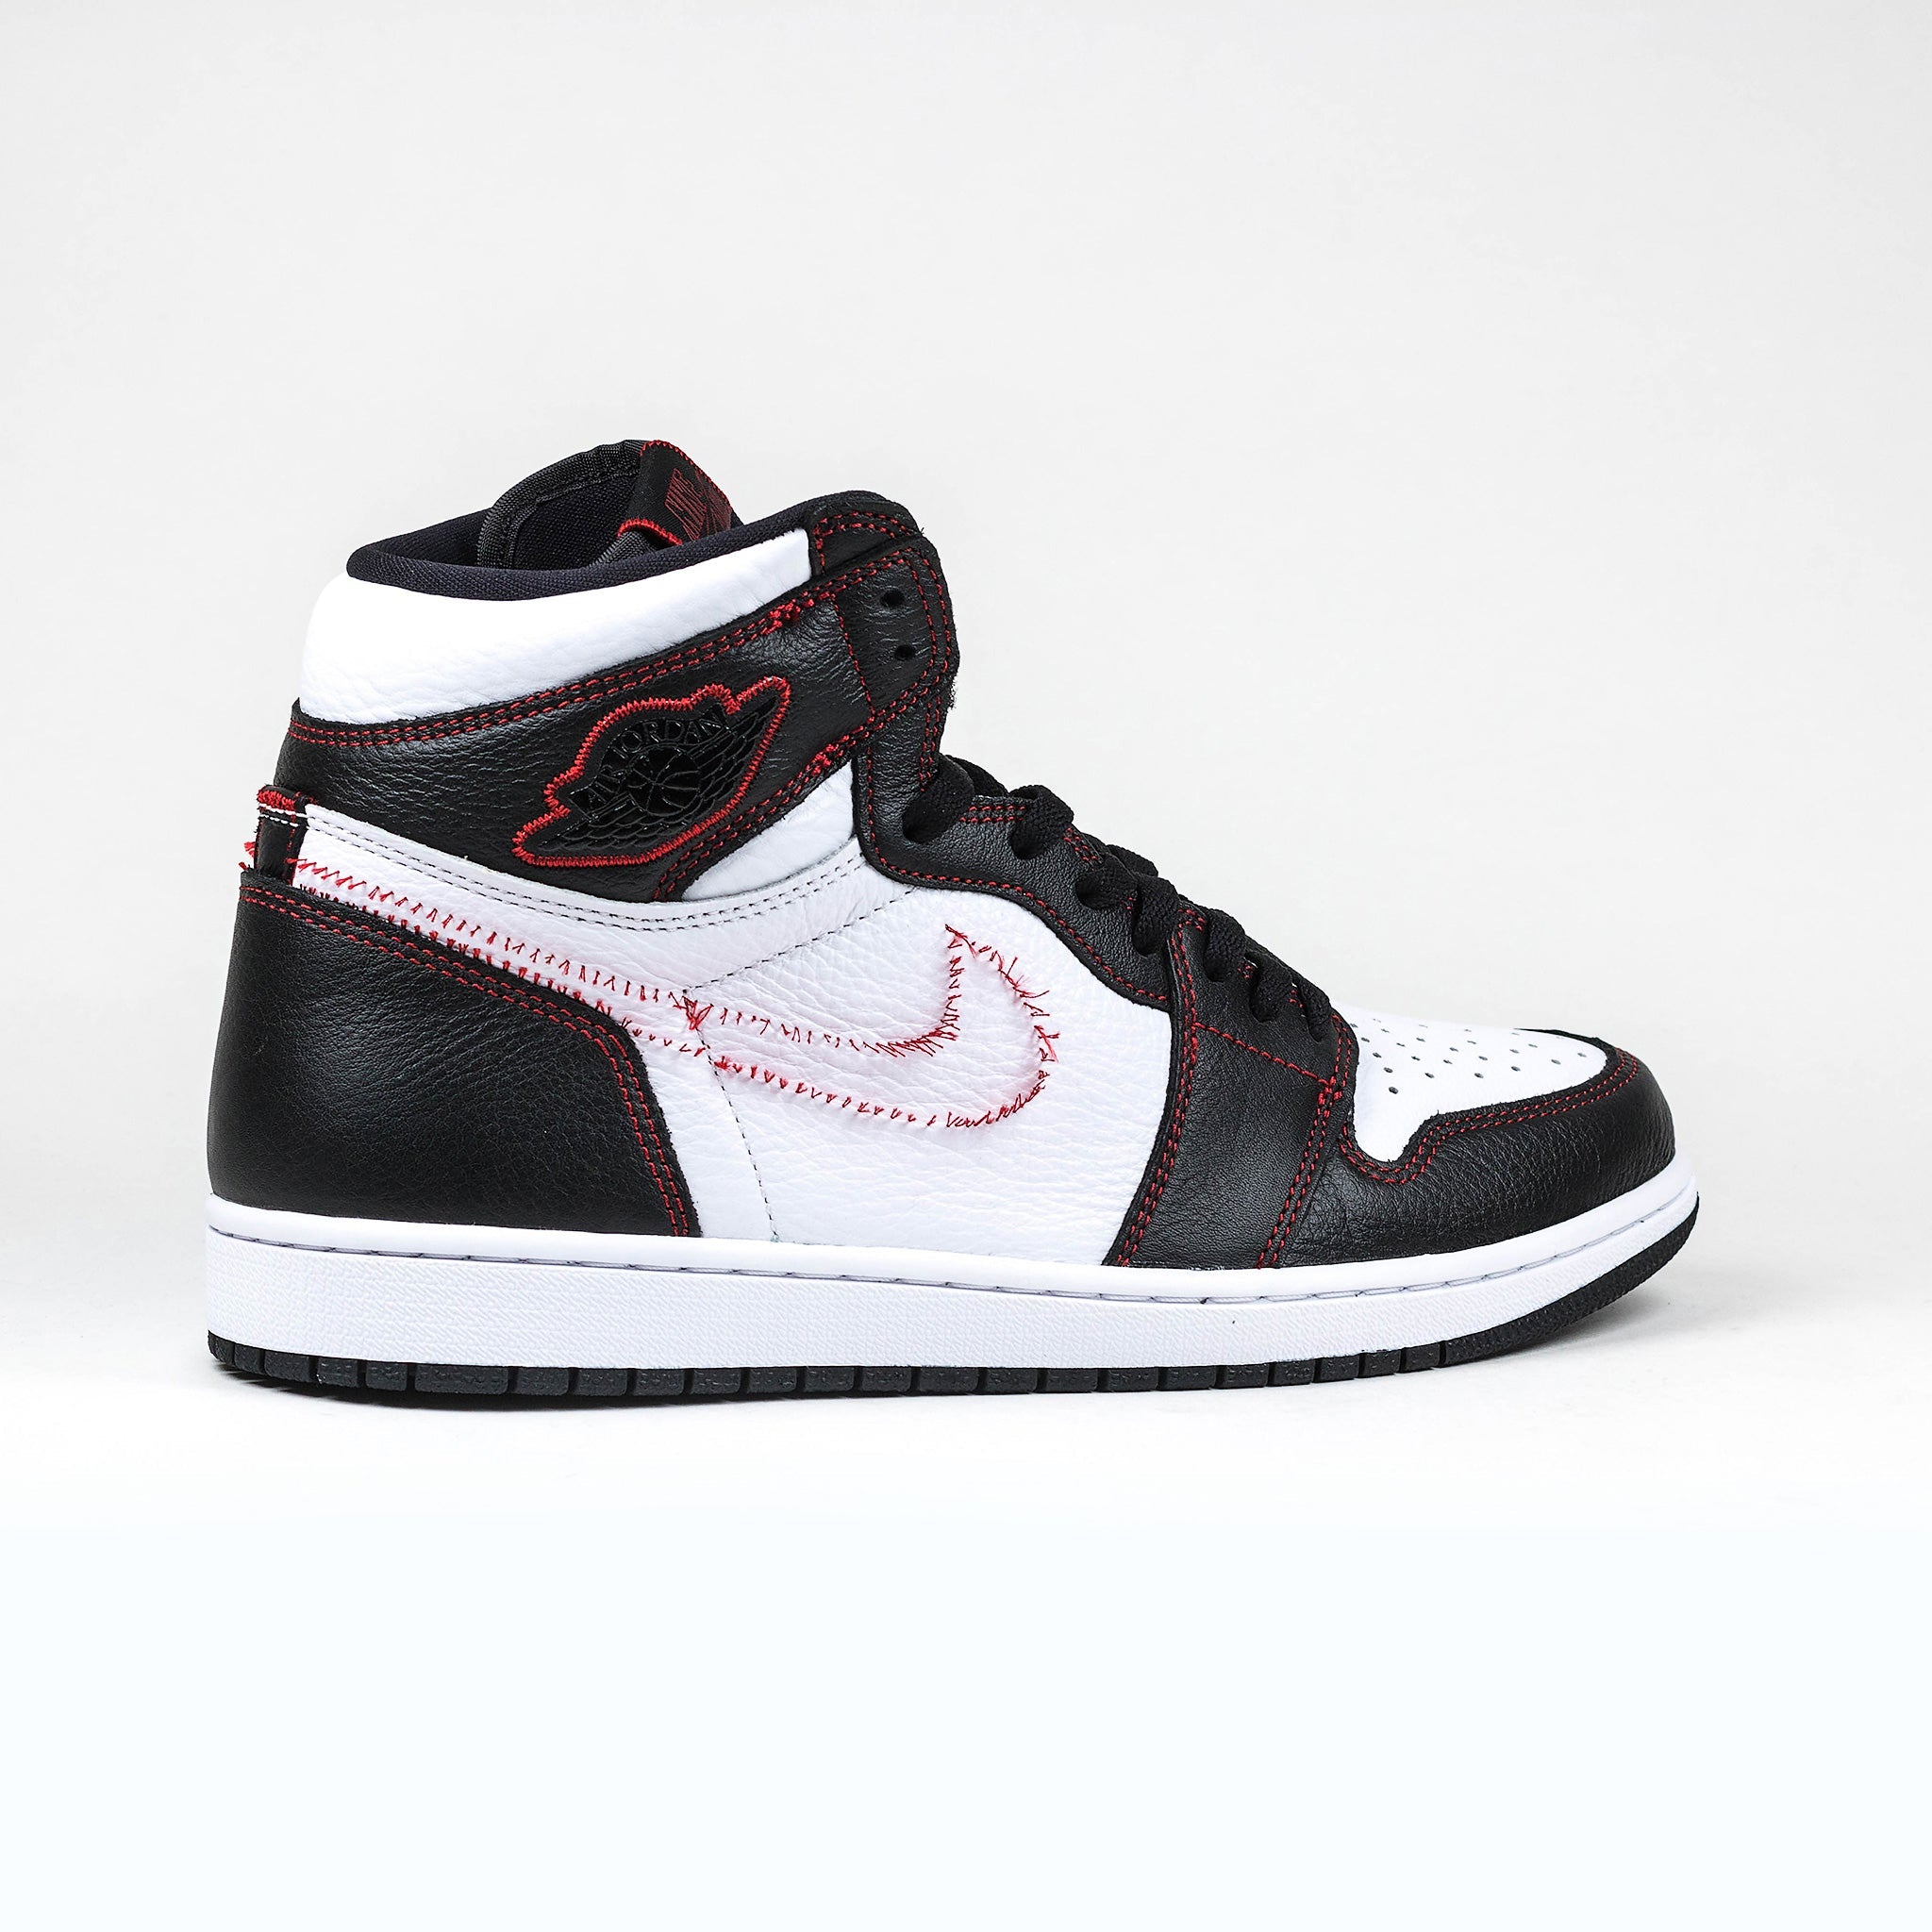 separation shoes 05e86 99813 Nike Air Jordan 1 Retro High Defiant White Black Gym Red